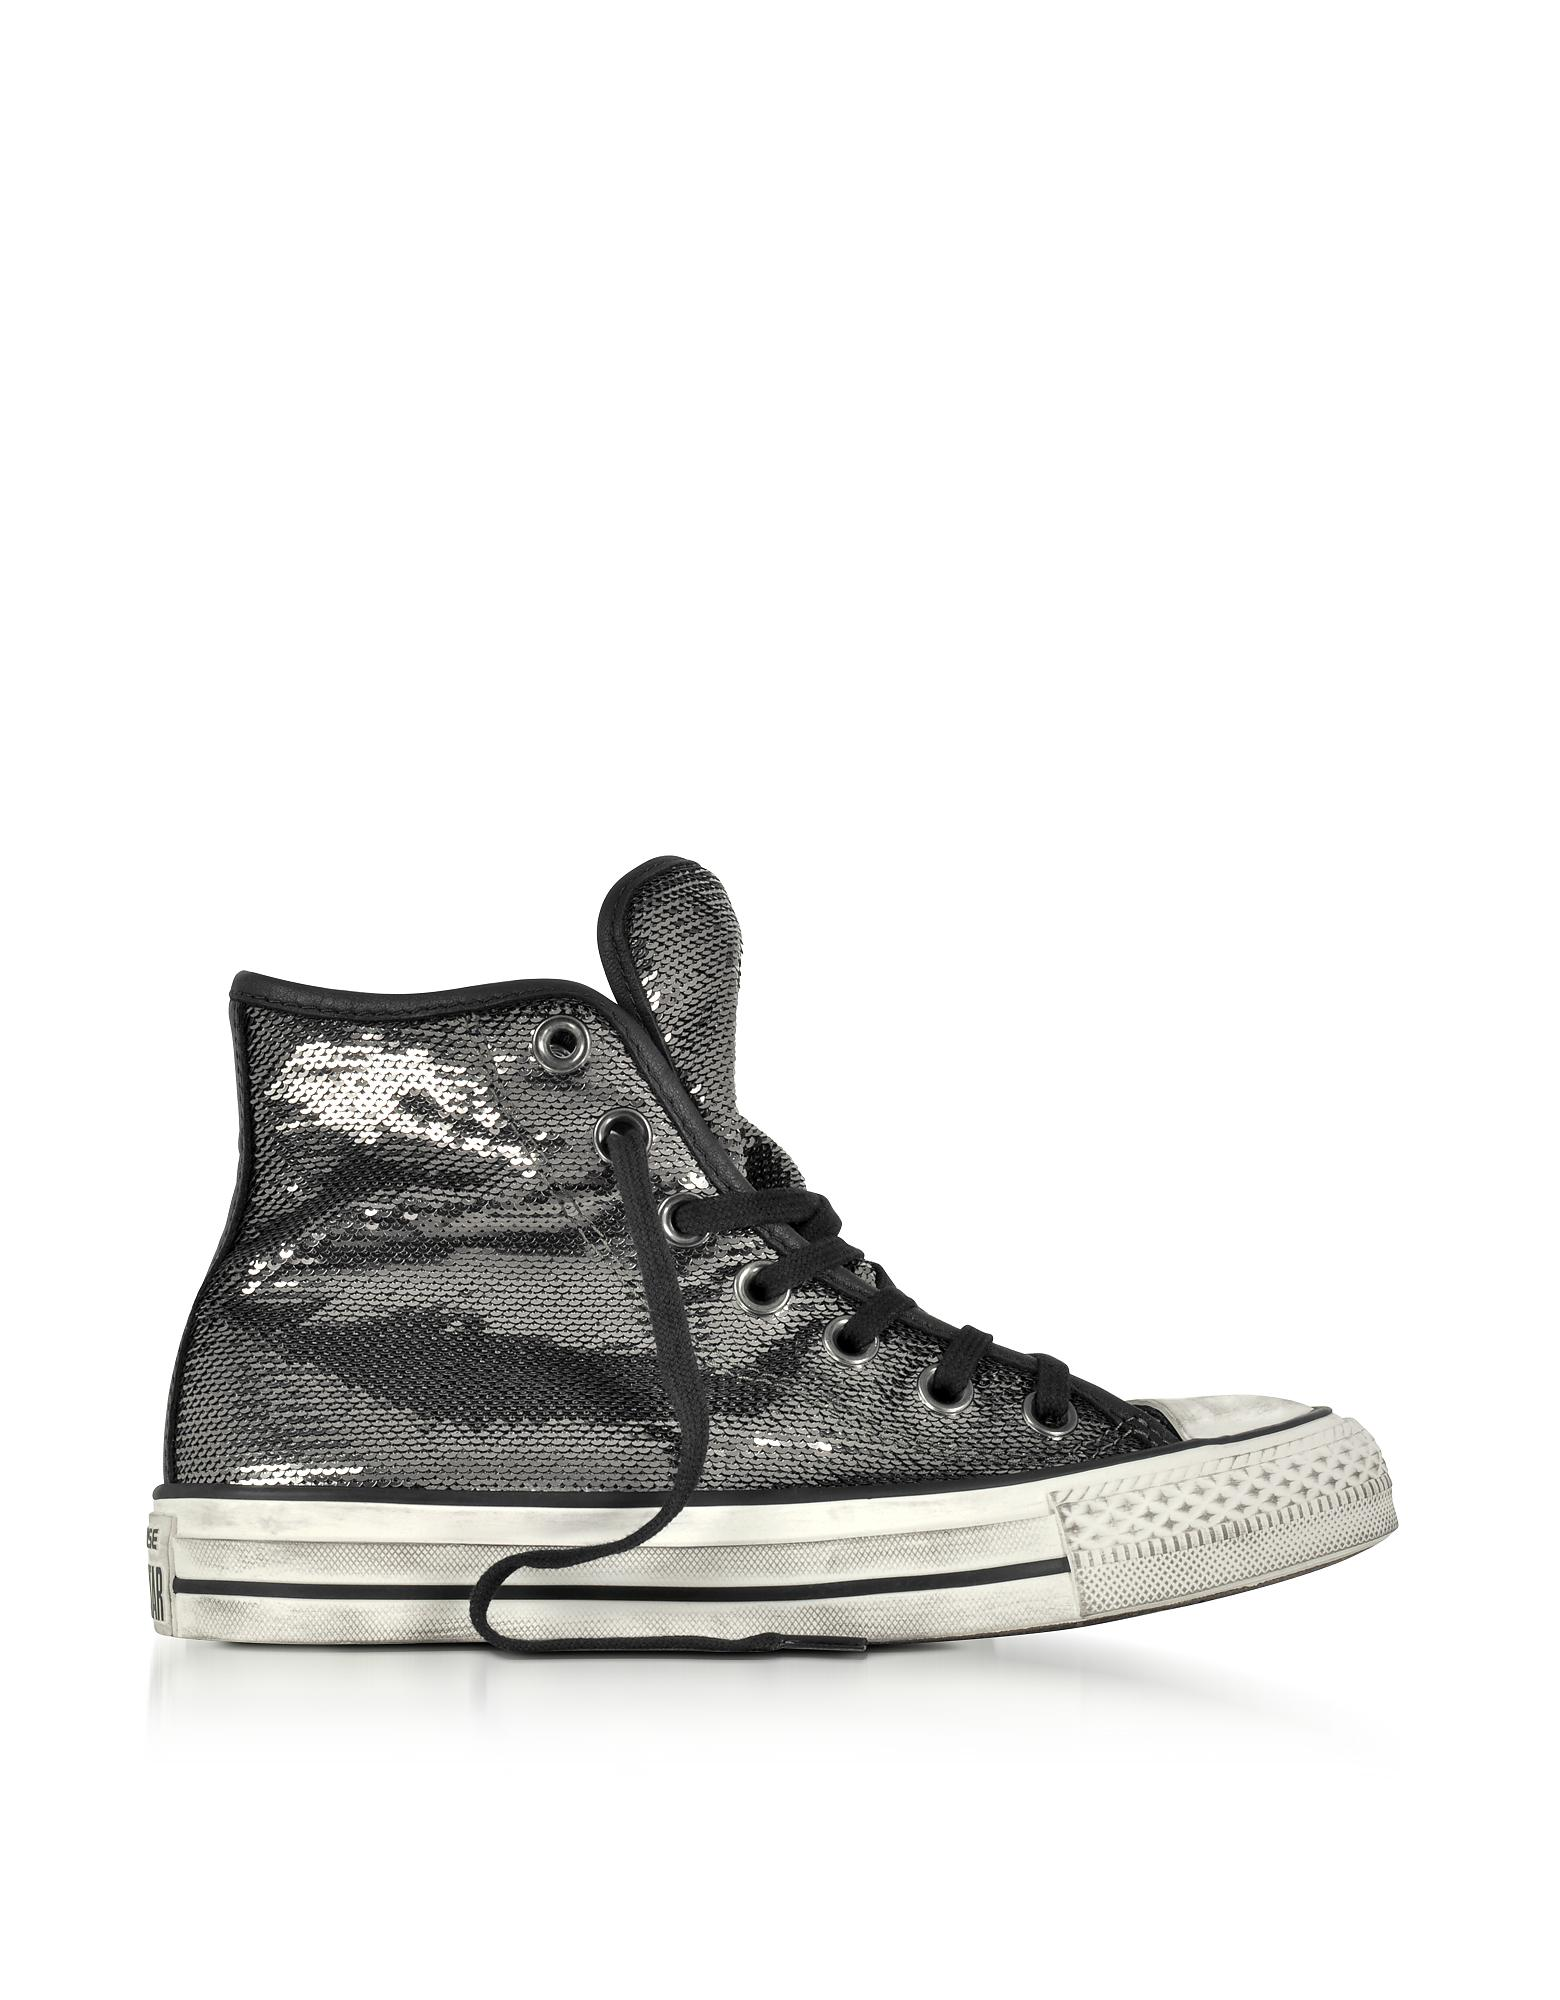 146e8bd45052 Converse Chuck Taylor All Star High Distressed Ox Thunder   Black ...